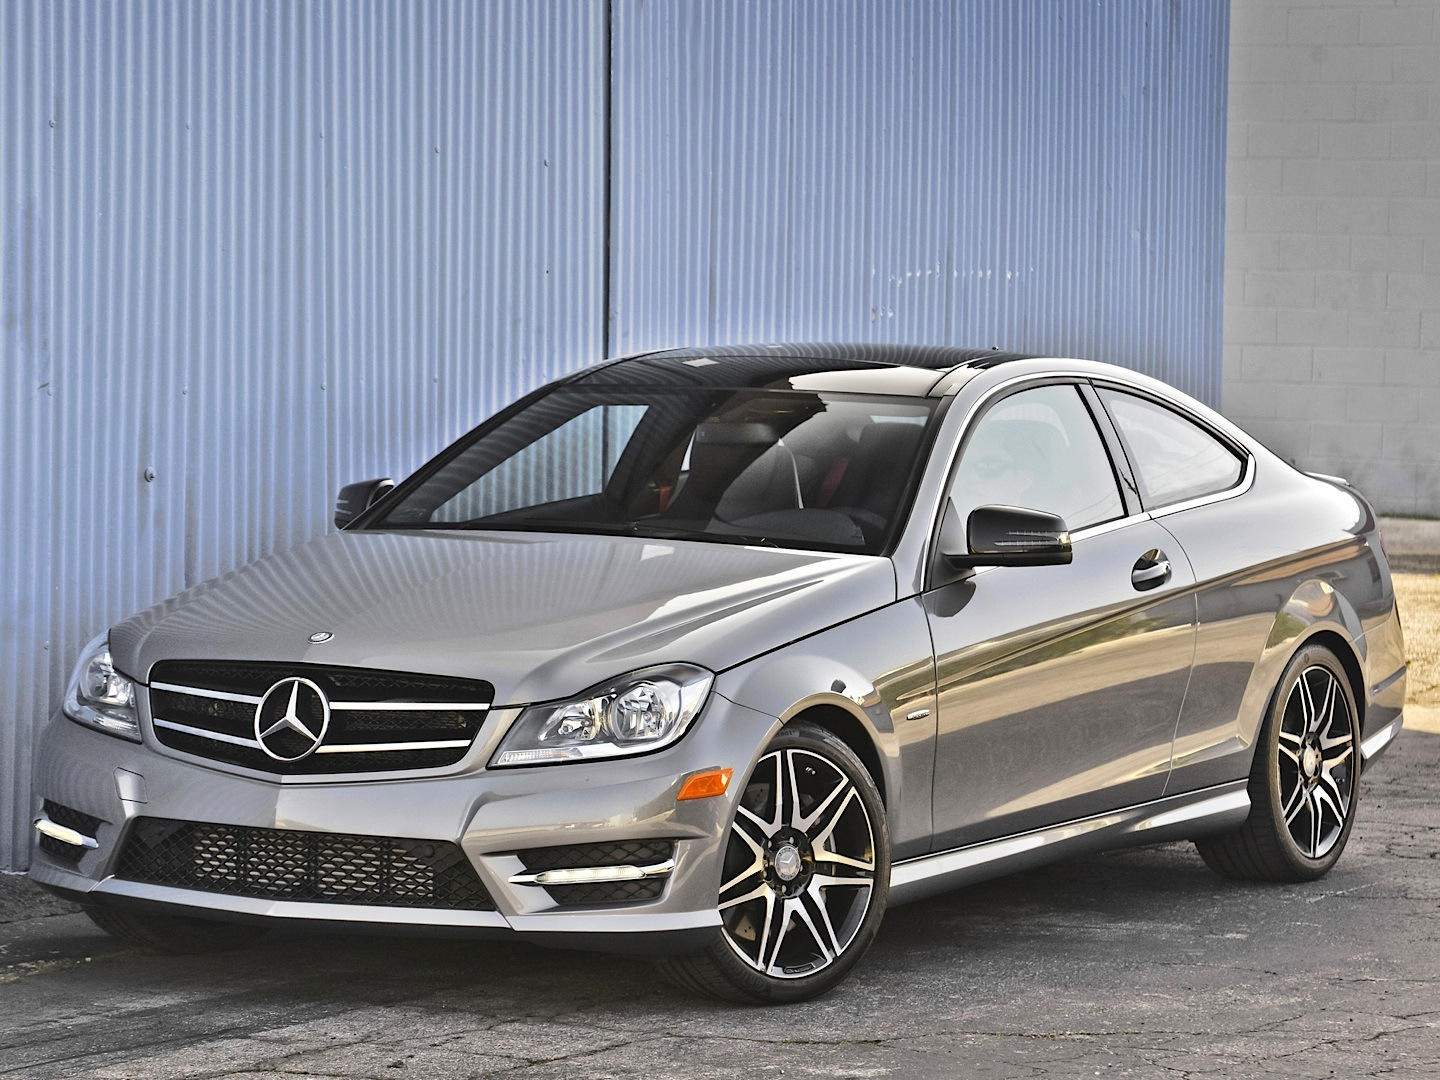 Mercedes benz c350 4matic review by autoguide autoevolution for Mercedes benz 350 c